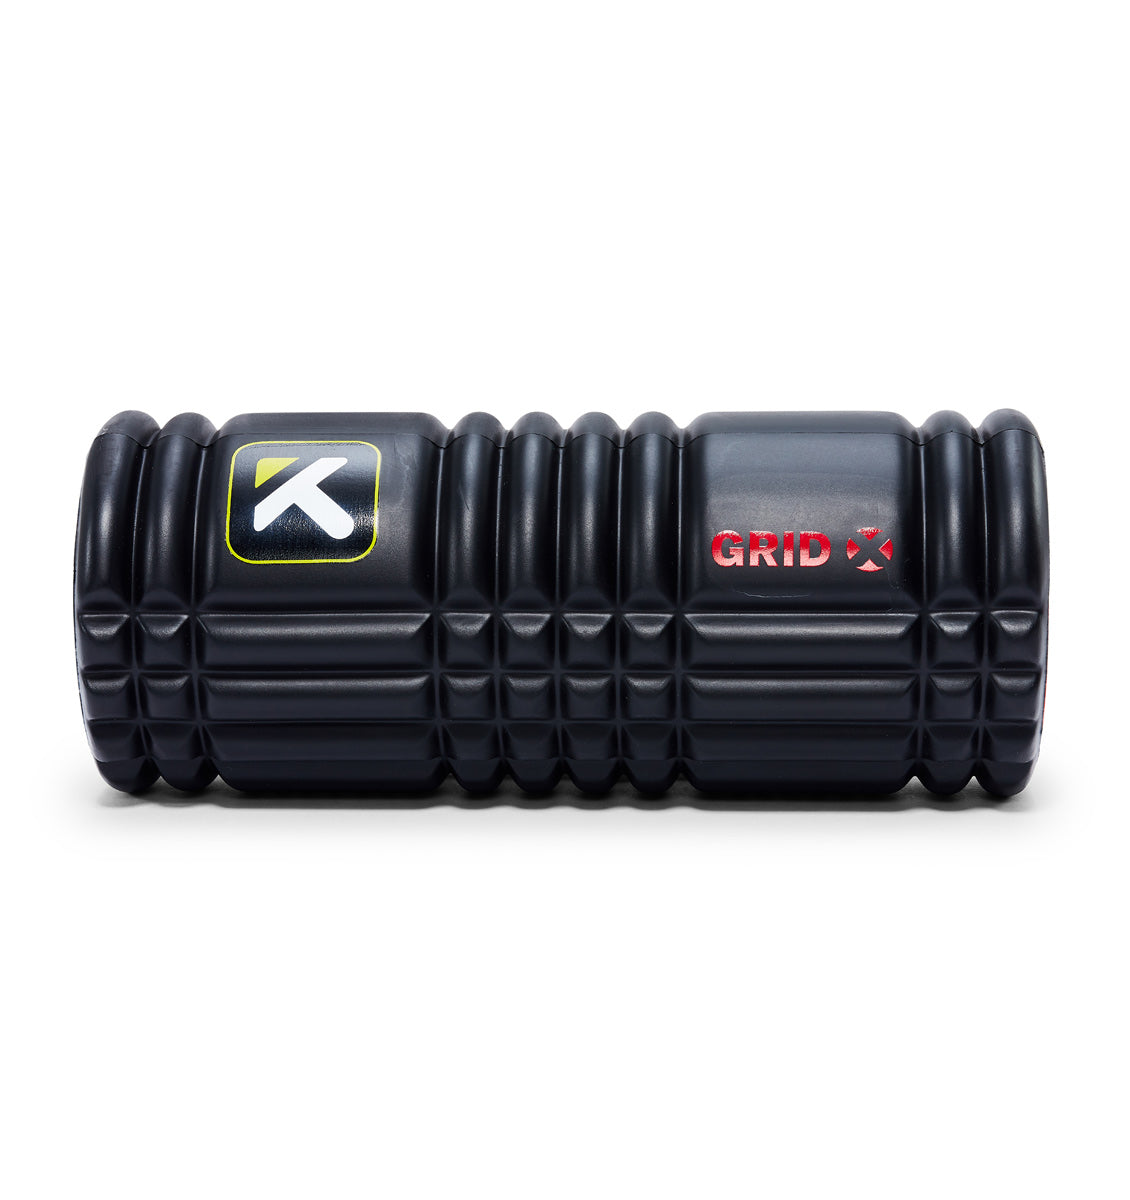 TPT3GRDPXX00000 TriggerPoint The Grid 1.0 X Foam Roller - Side